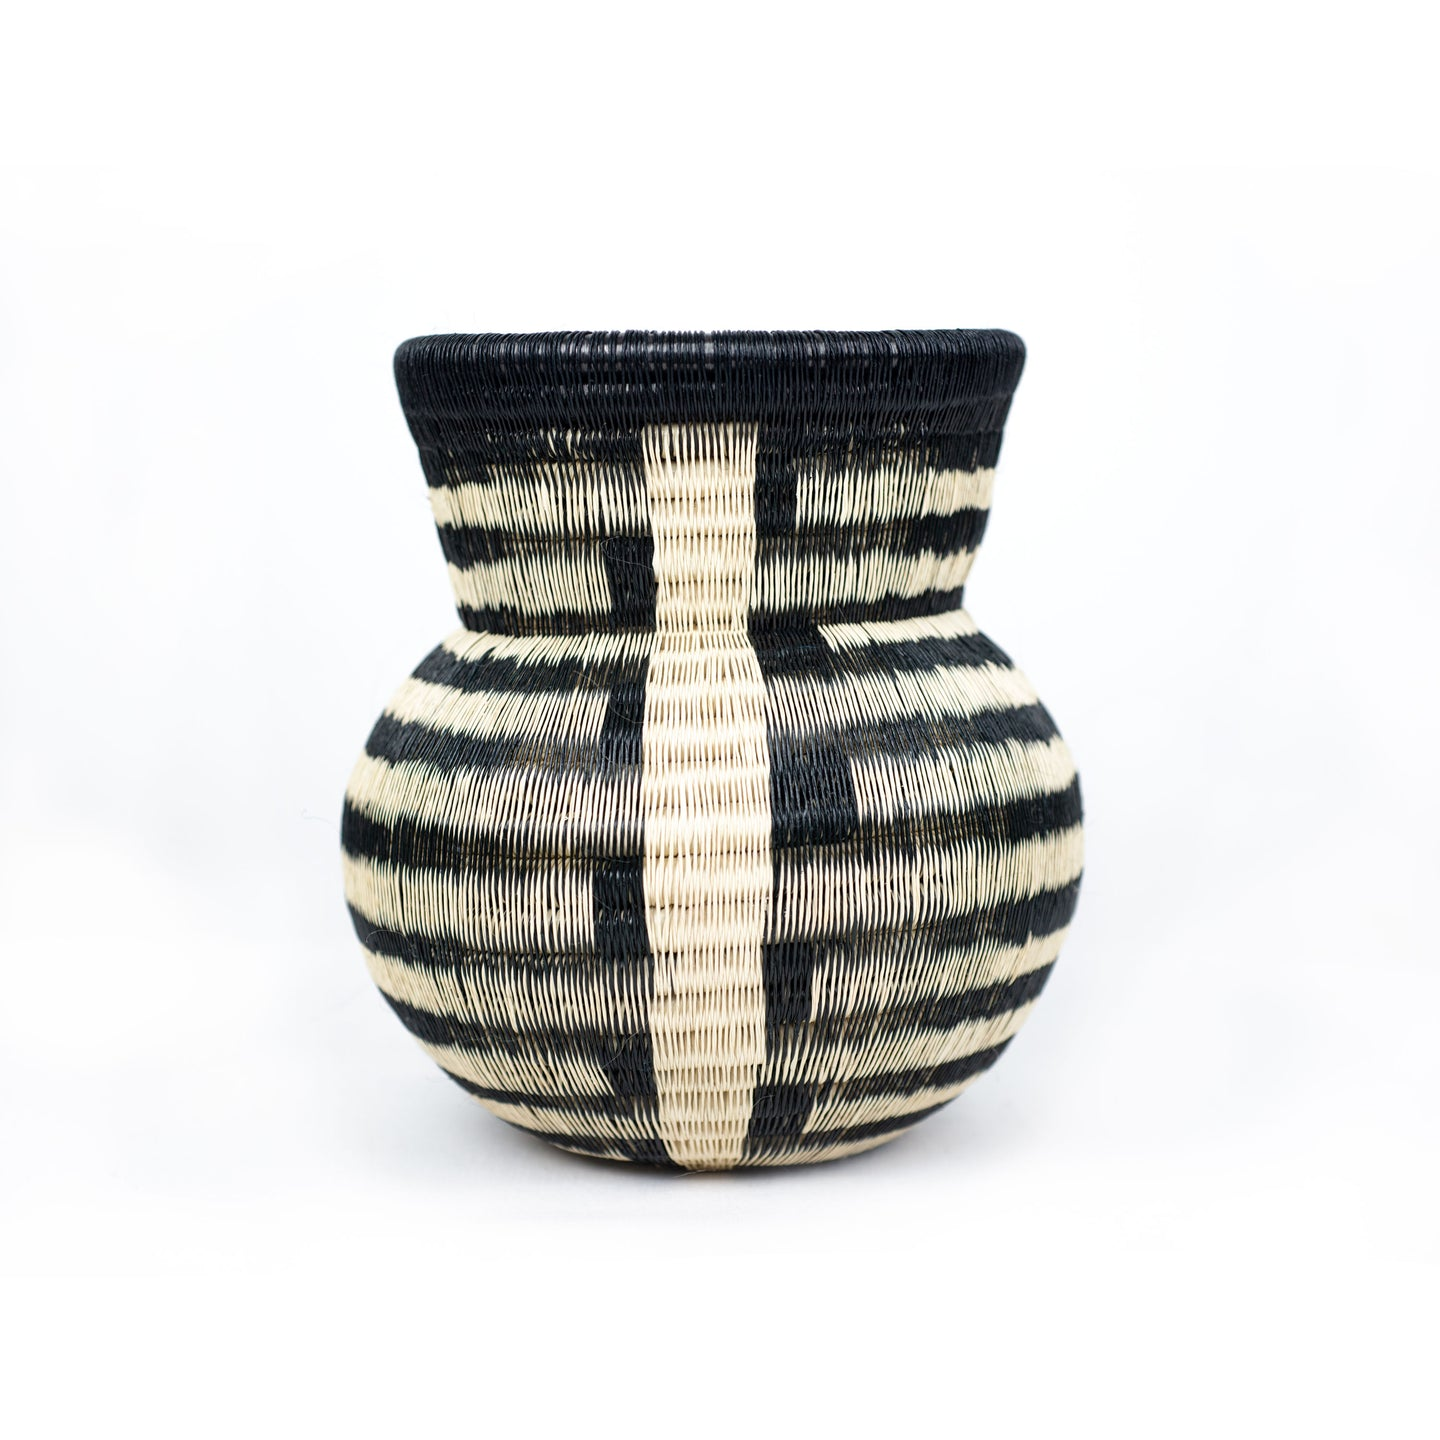 colombian basketry